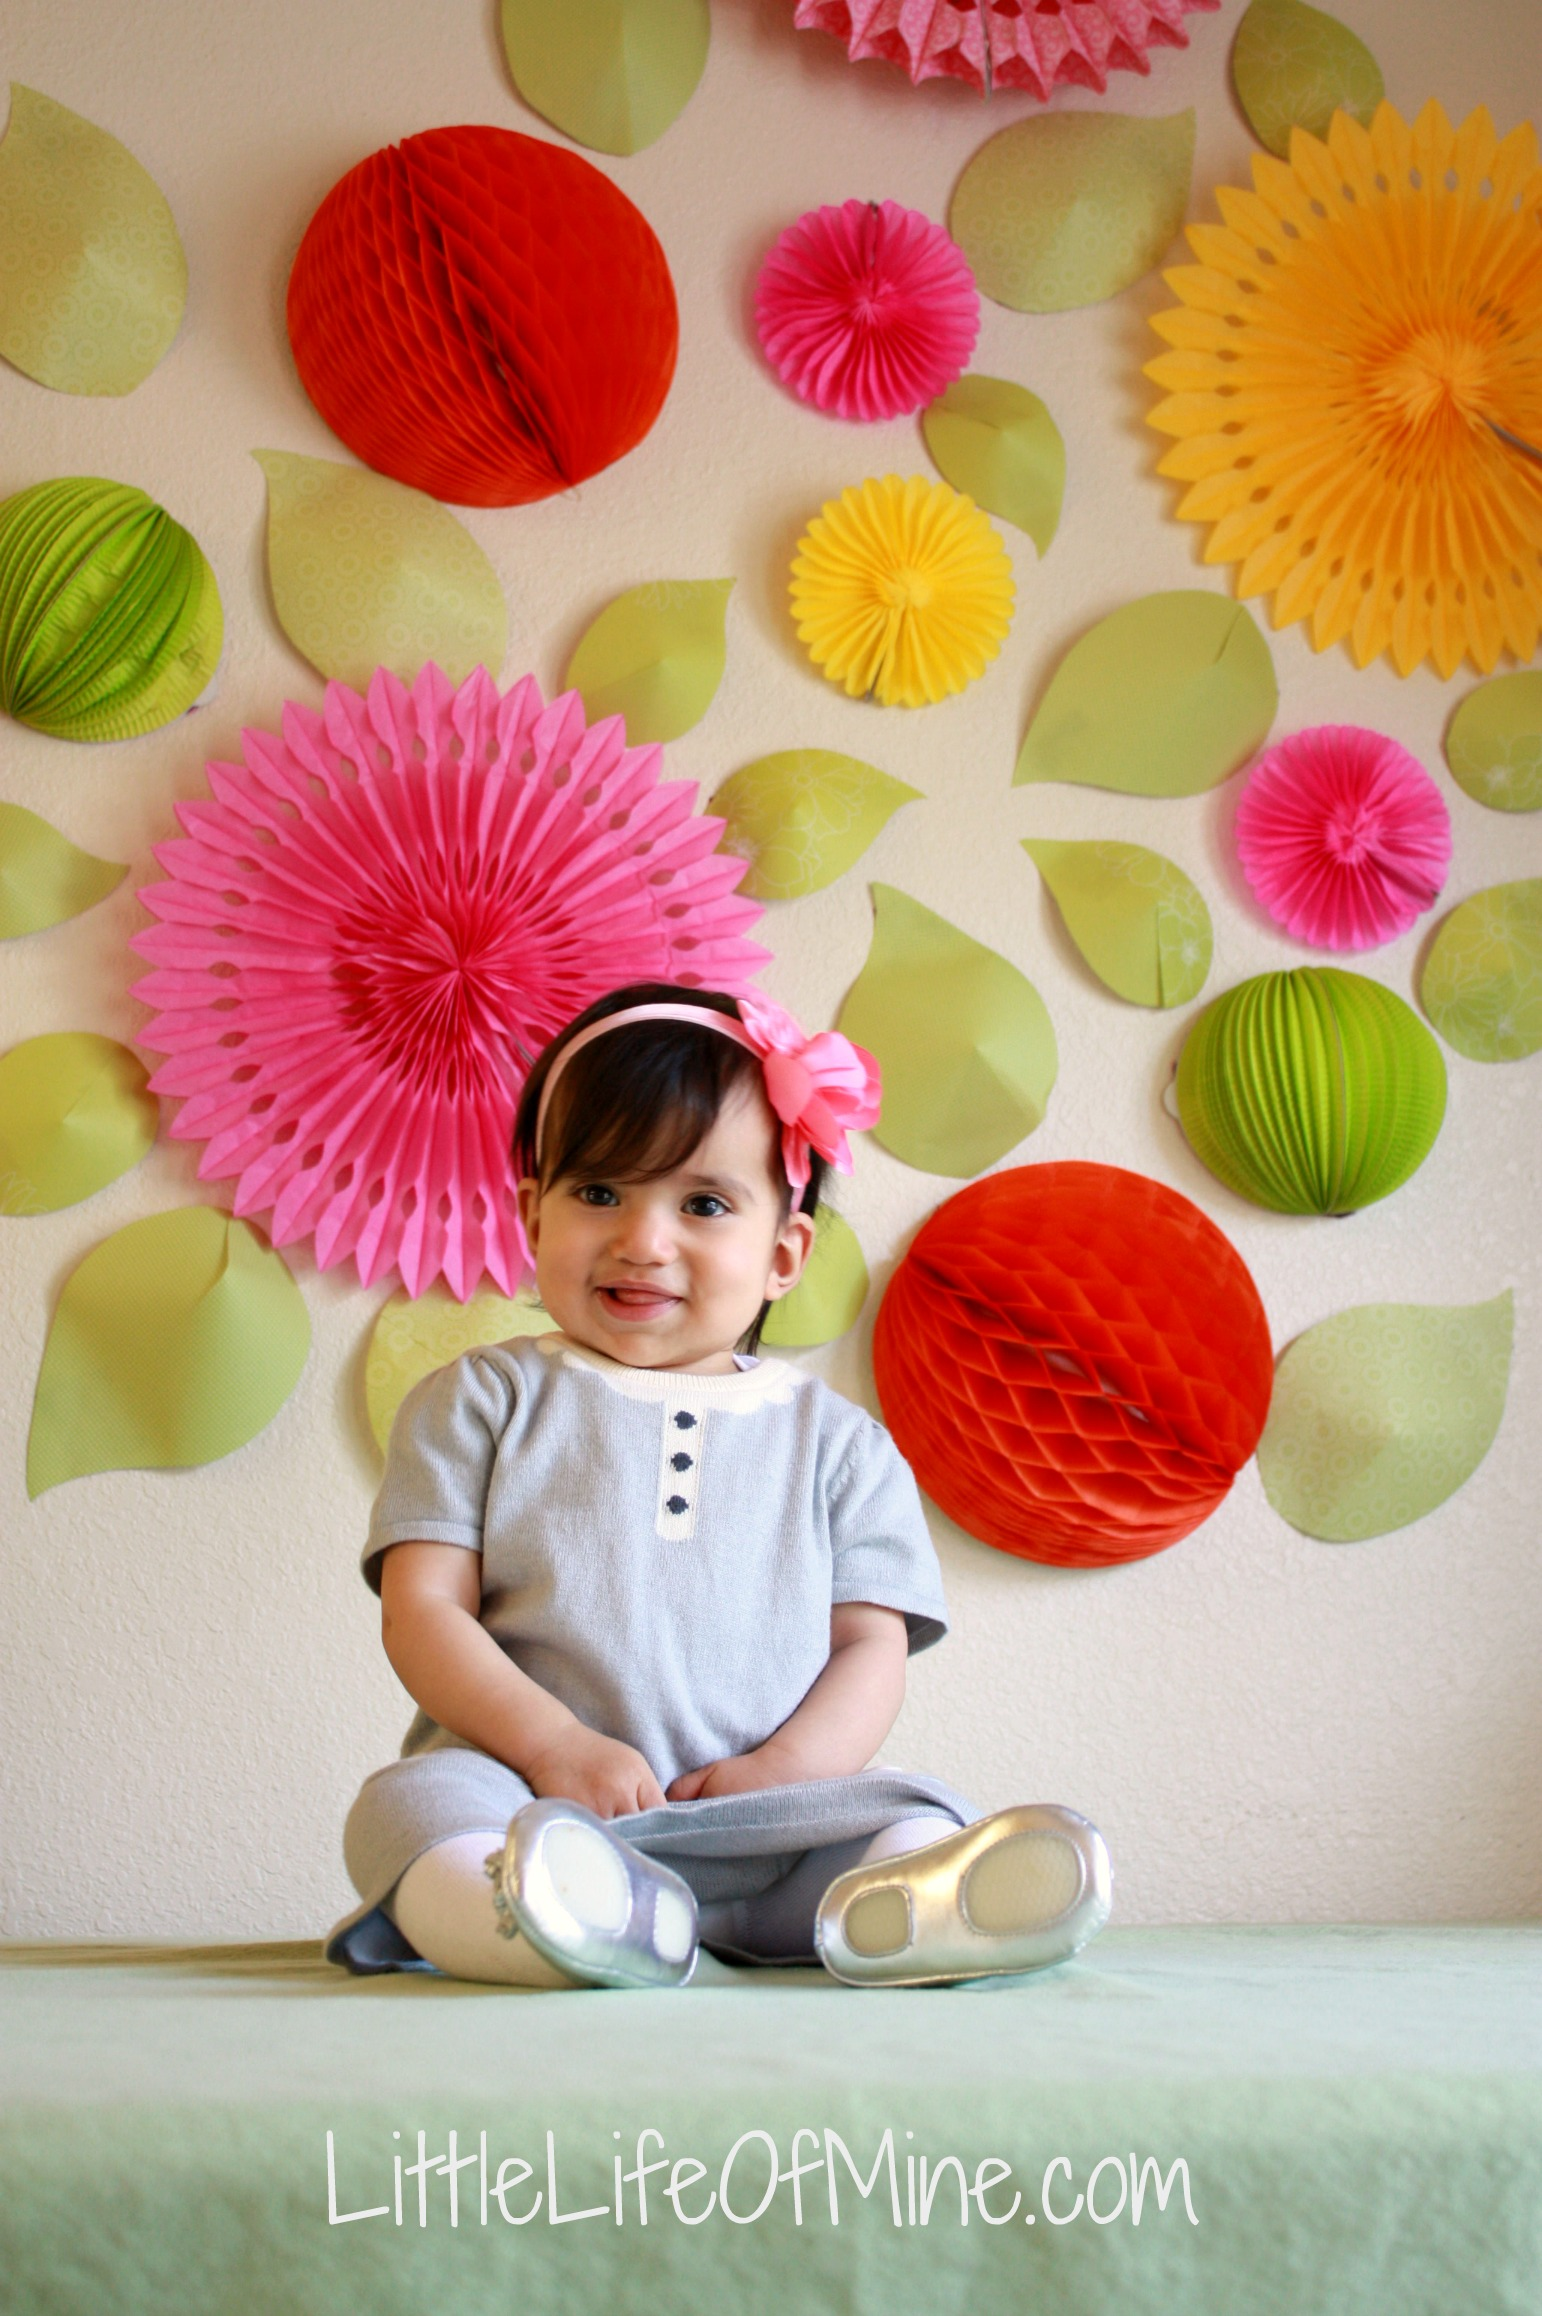 Simple Birthday Party Decoration Ideas For 1 Year Old Flisol Home